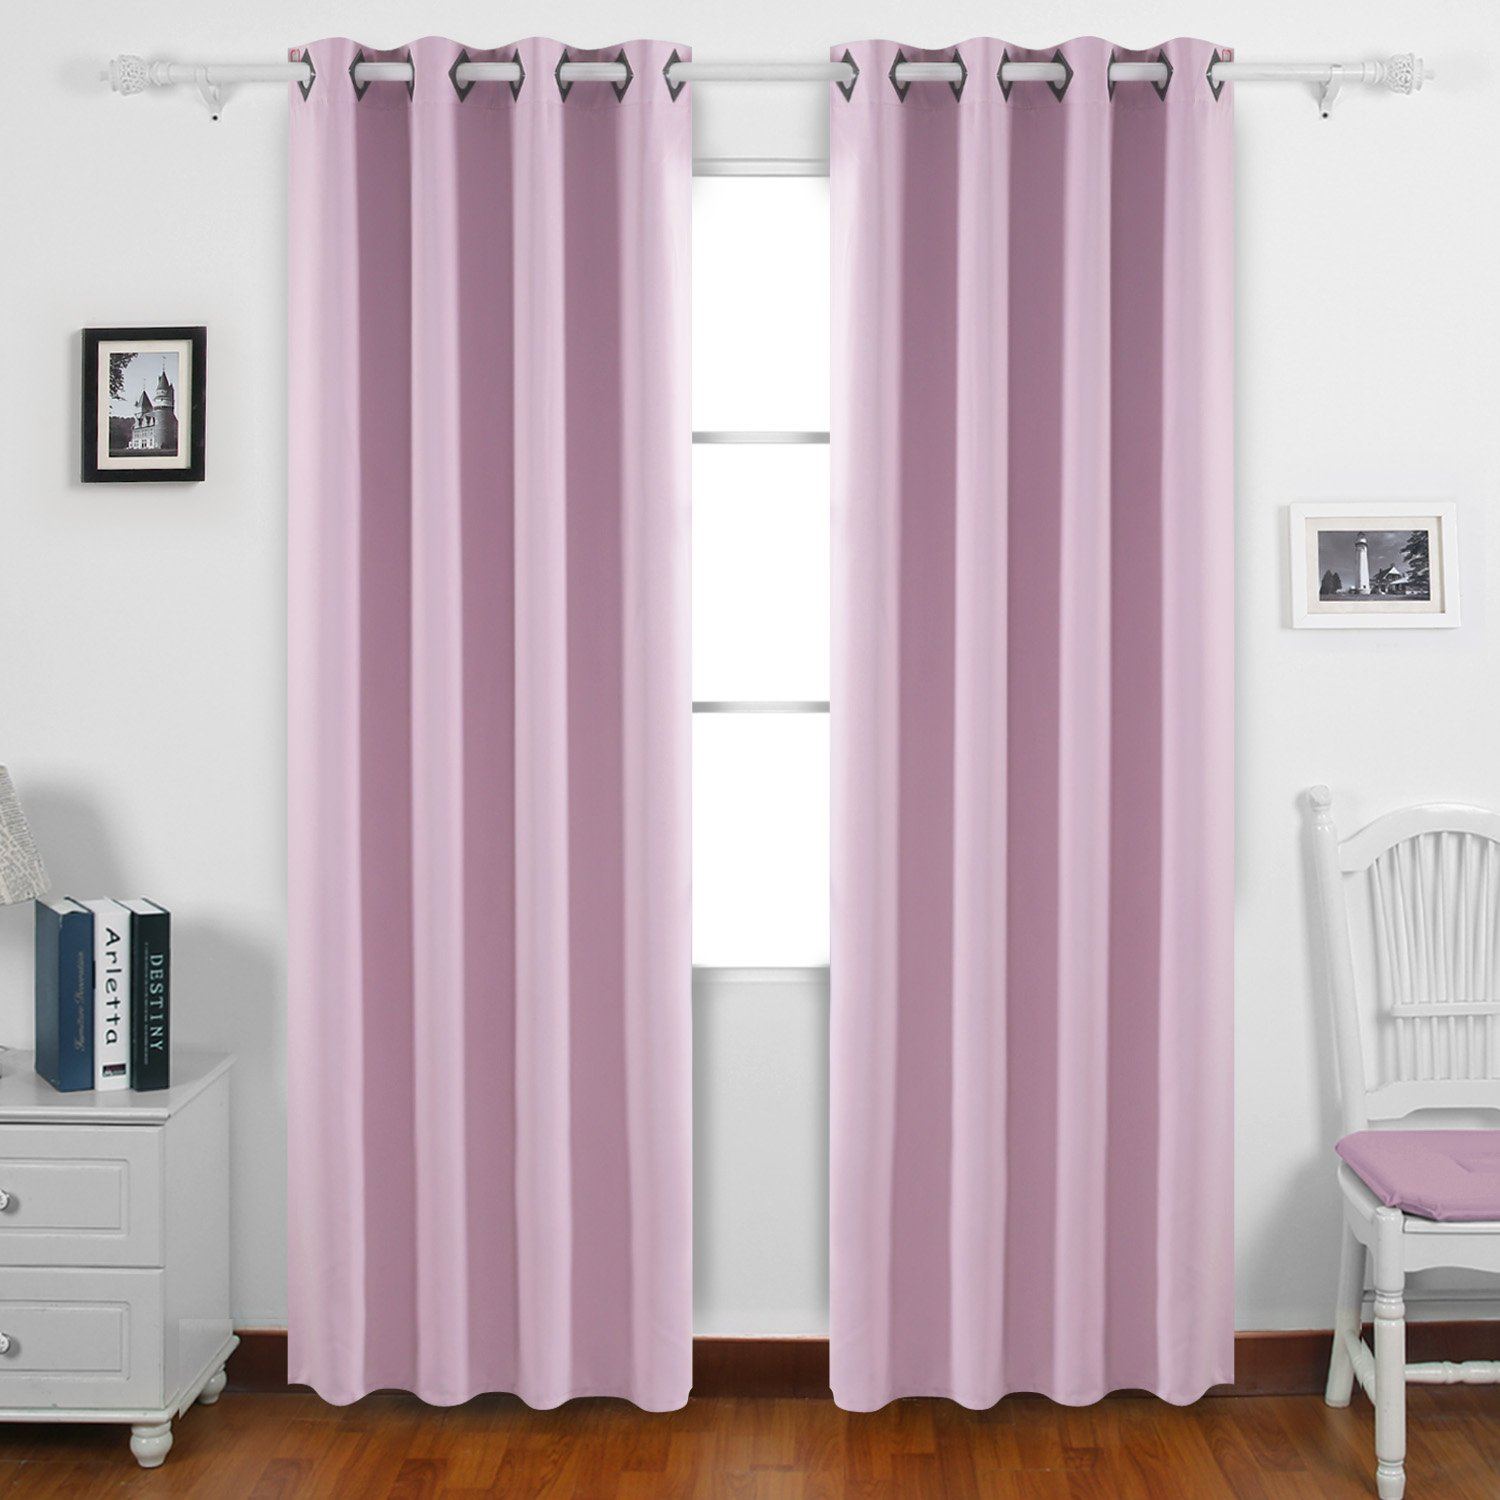 Deconovo Thermal Insulated Window Treatments Blackout Curtains Grommet Top Curtains